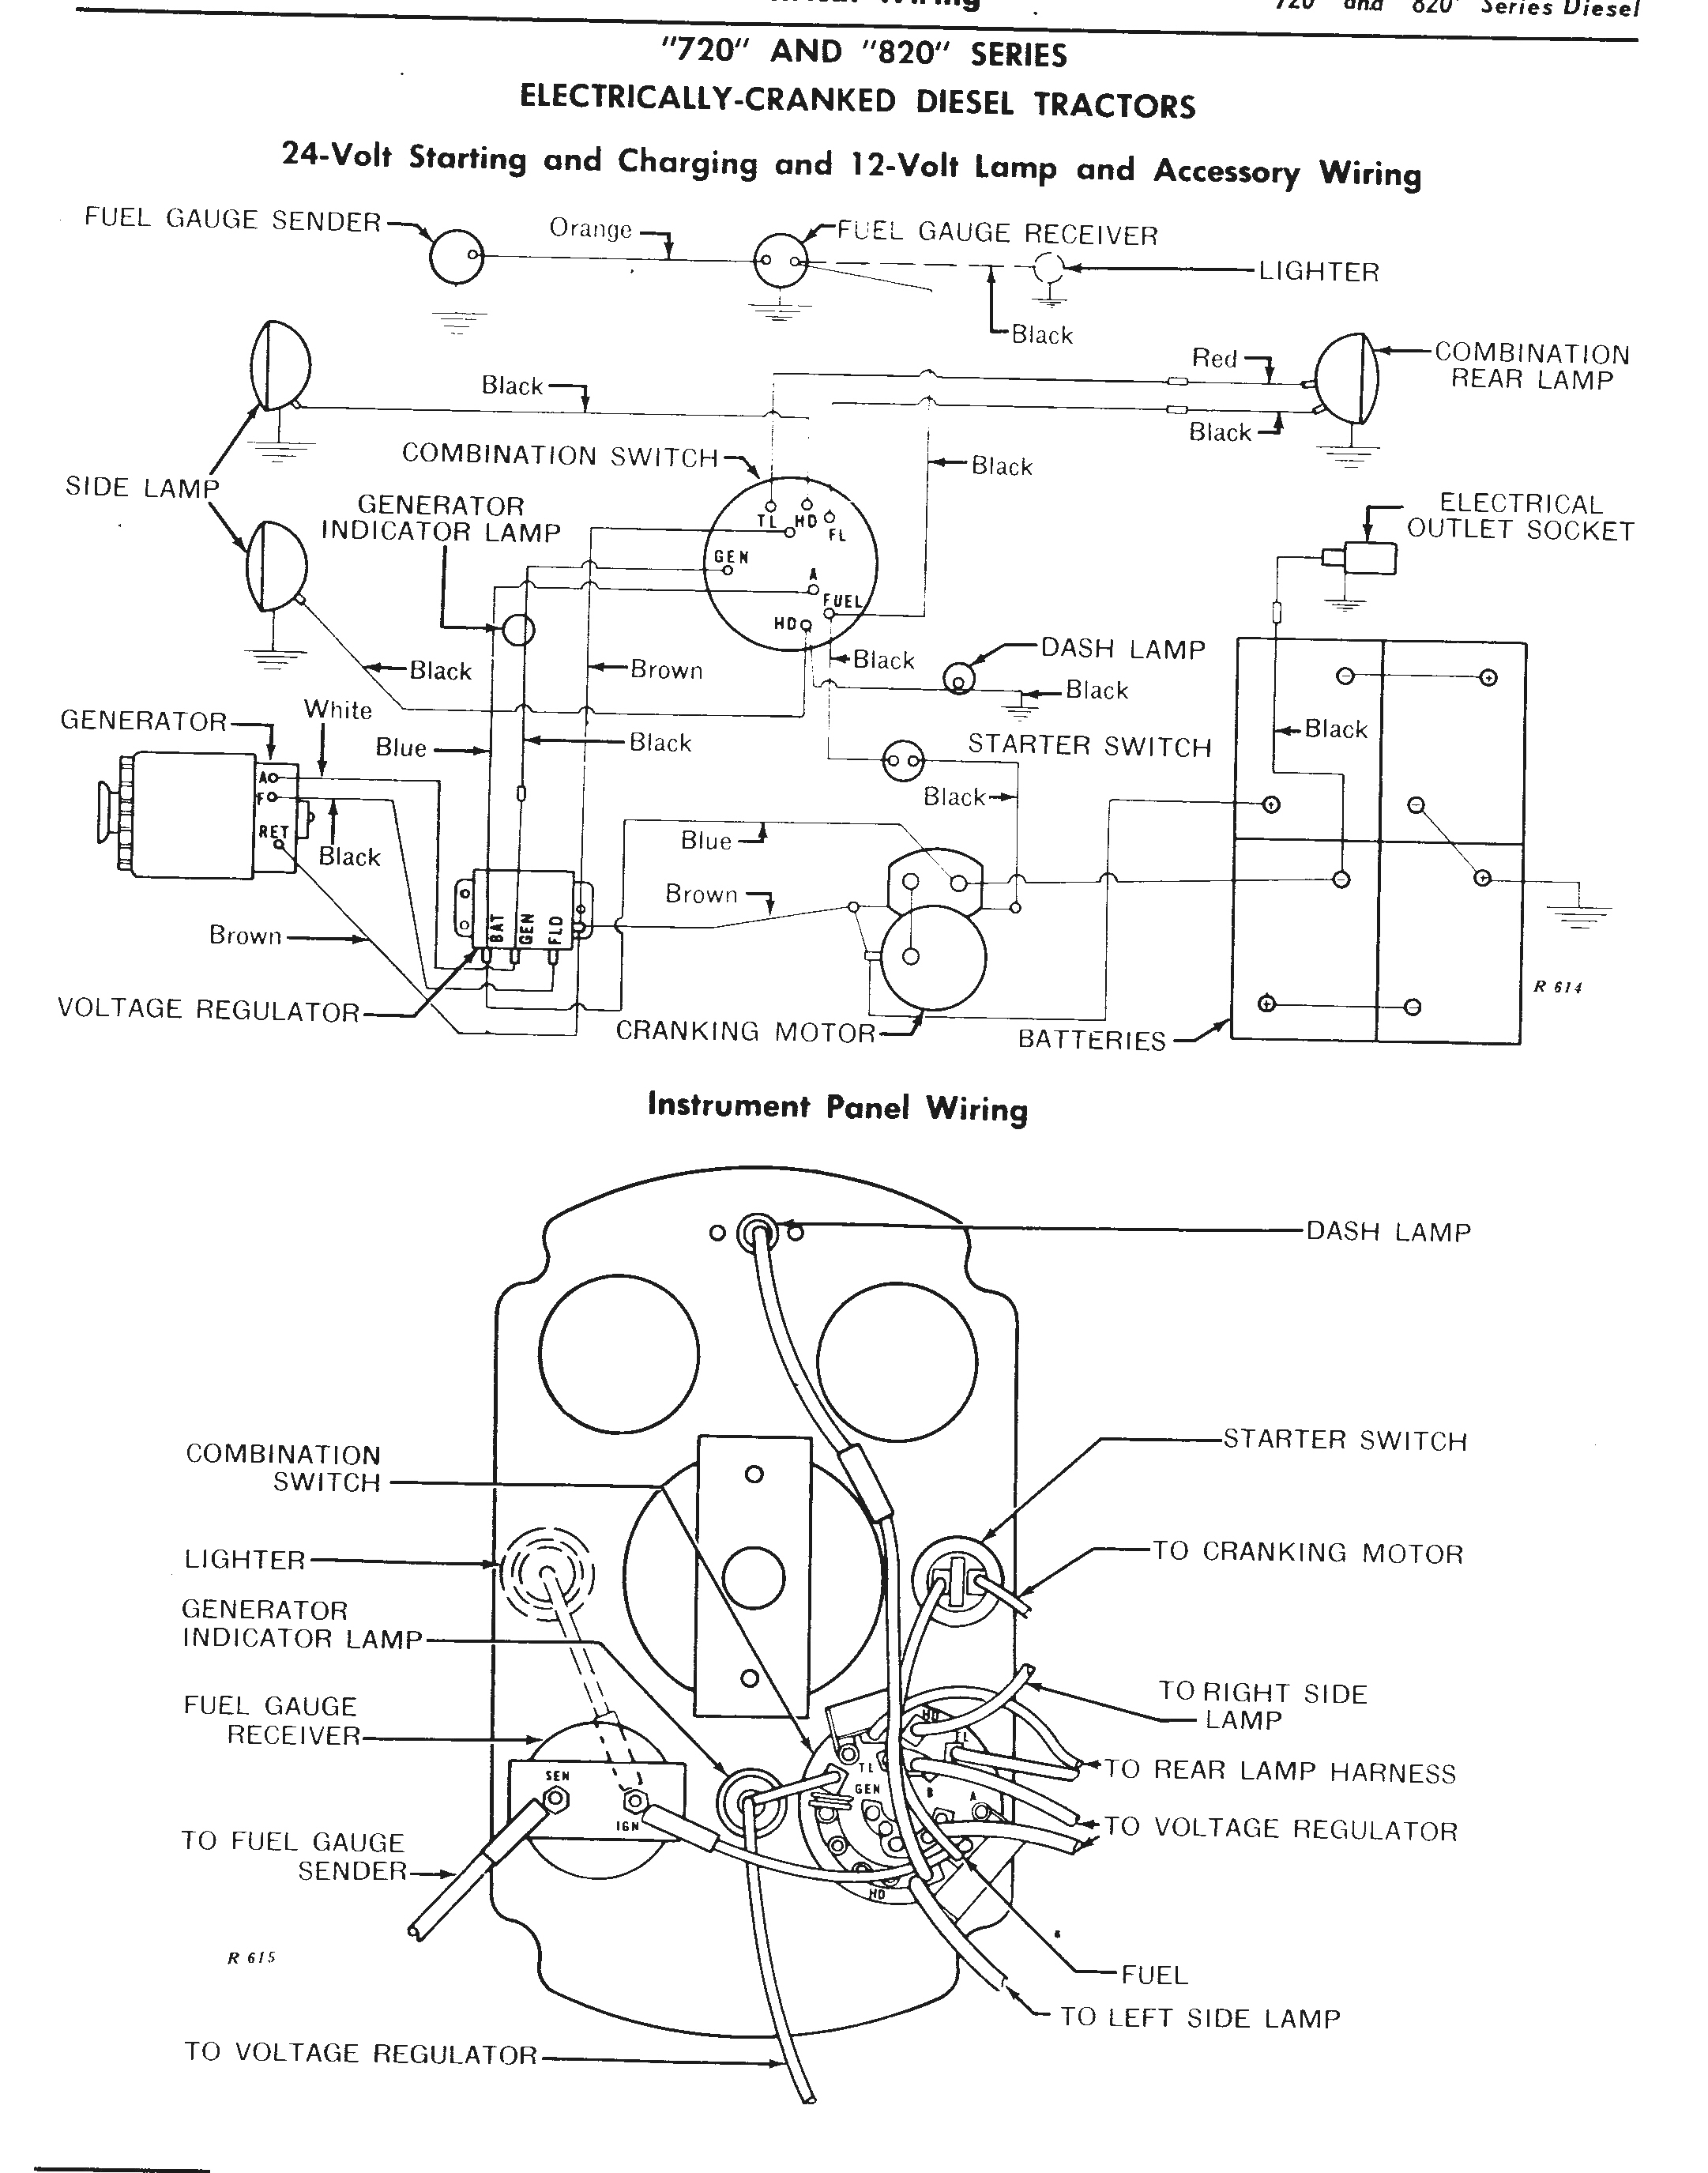 The John Deere 24 Volt Electrical System Explained John Deere Solenoid Switch Wiring Diagram on john deere 455 wiring-diagram, john deere 325 wiring-diagram, john deere 212 solenoid, john deere lawn tractors, john deere 111h wiring-diagram, john deere m wiring-diagram, john deere lt166 wiring-diagram, john deere 4430 wiring-diagram, john deere 235 wiring-diagram, john deere solenoid connections, john deere solenoid replacement, john deere ignition switch diagram, john deere gator diagram, john deere 145 wiring-diagram, john deere model b engine diagram, john deere 345 kawasaki wiring diagrams, john deere lx172 wiring-diagram, caterpillar starter wiring diagram, john deere solenoid problems, john deere 322 wiring-diagram,